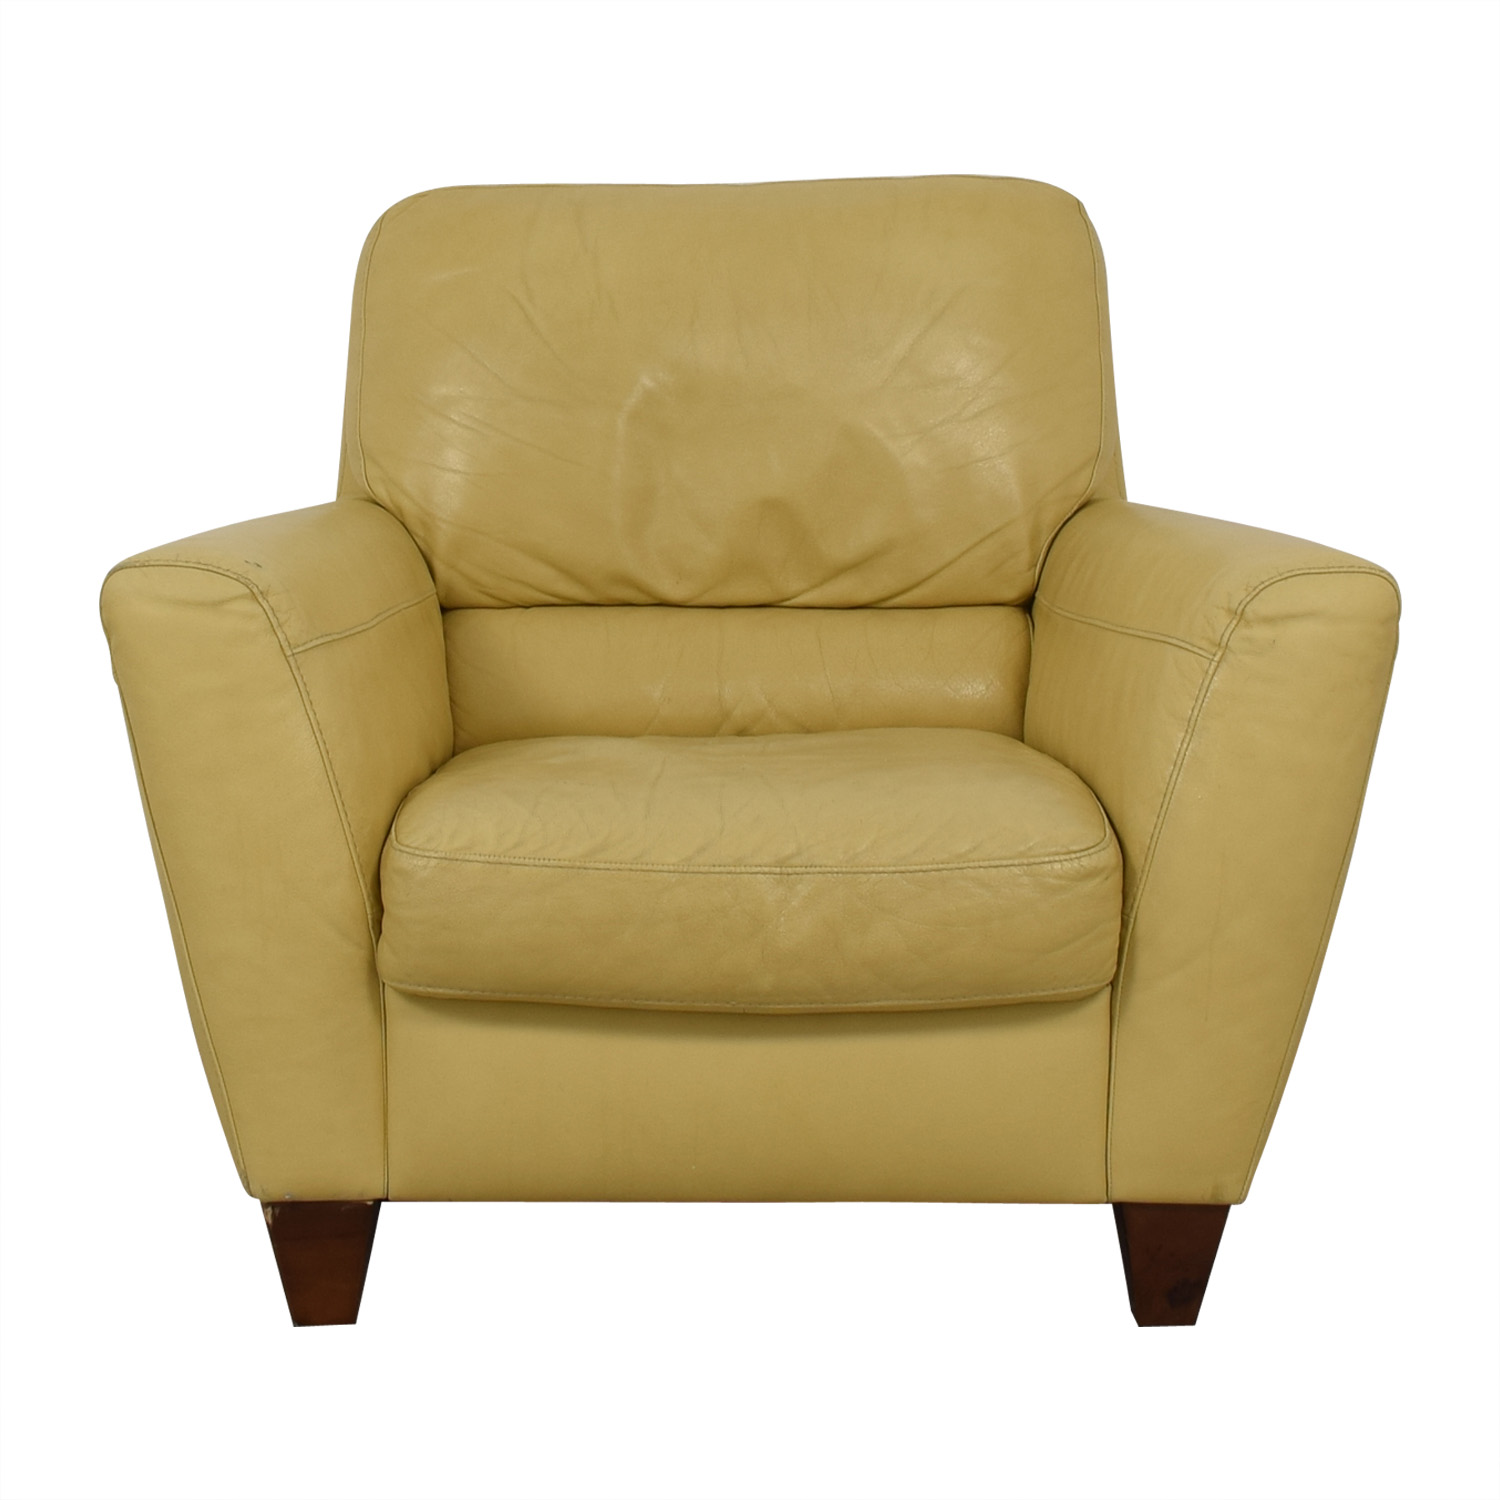 Natuzzi Natuzzi Yellow Accent Chair discount